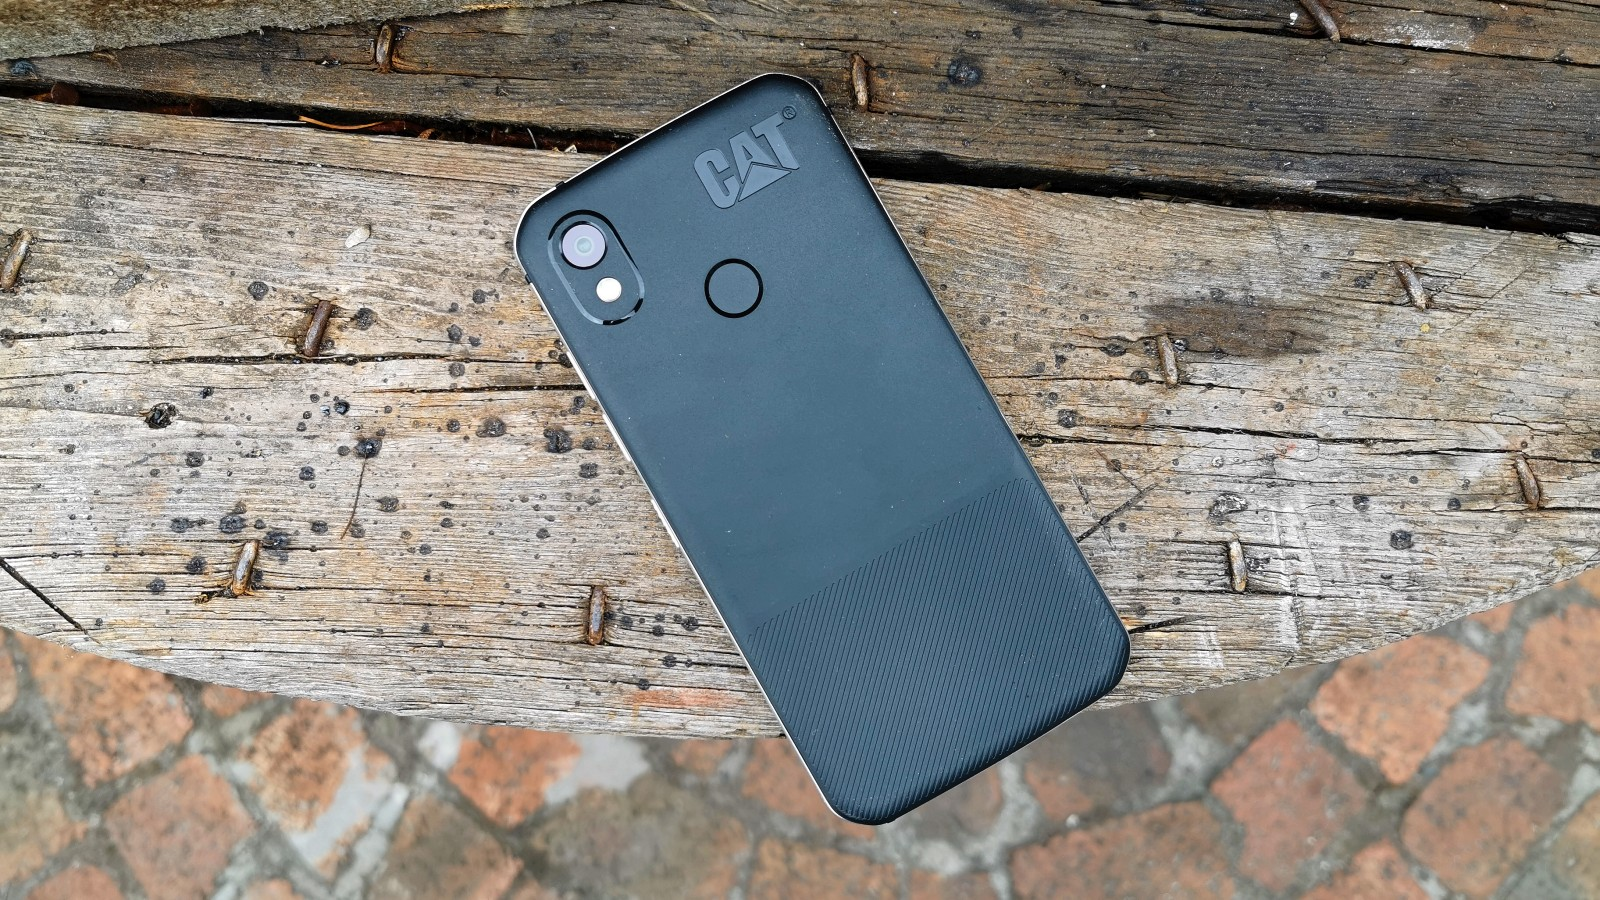 48 hours with the Cat S52, a rugged phone in a dinner jacket